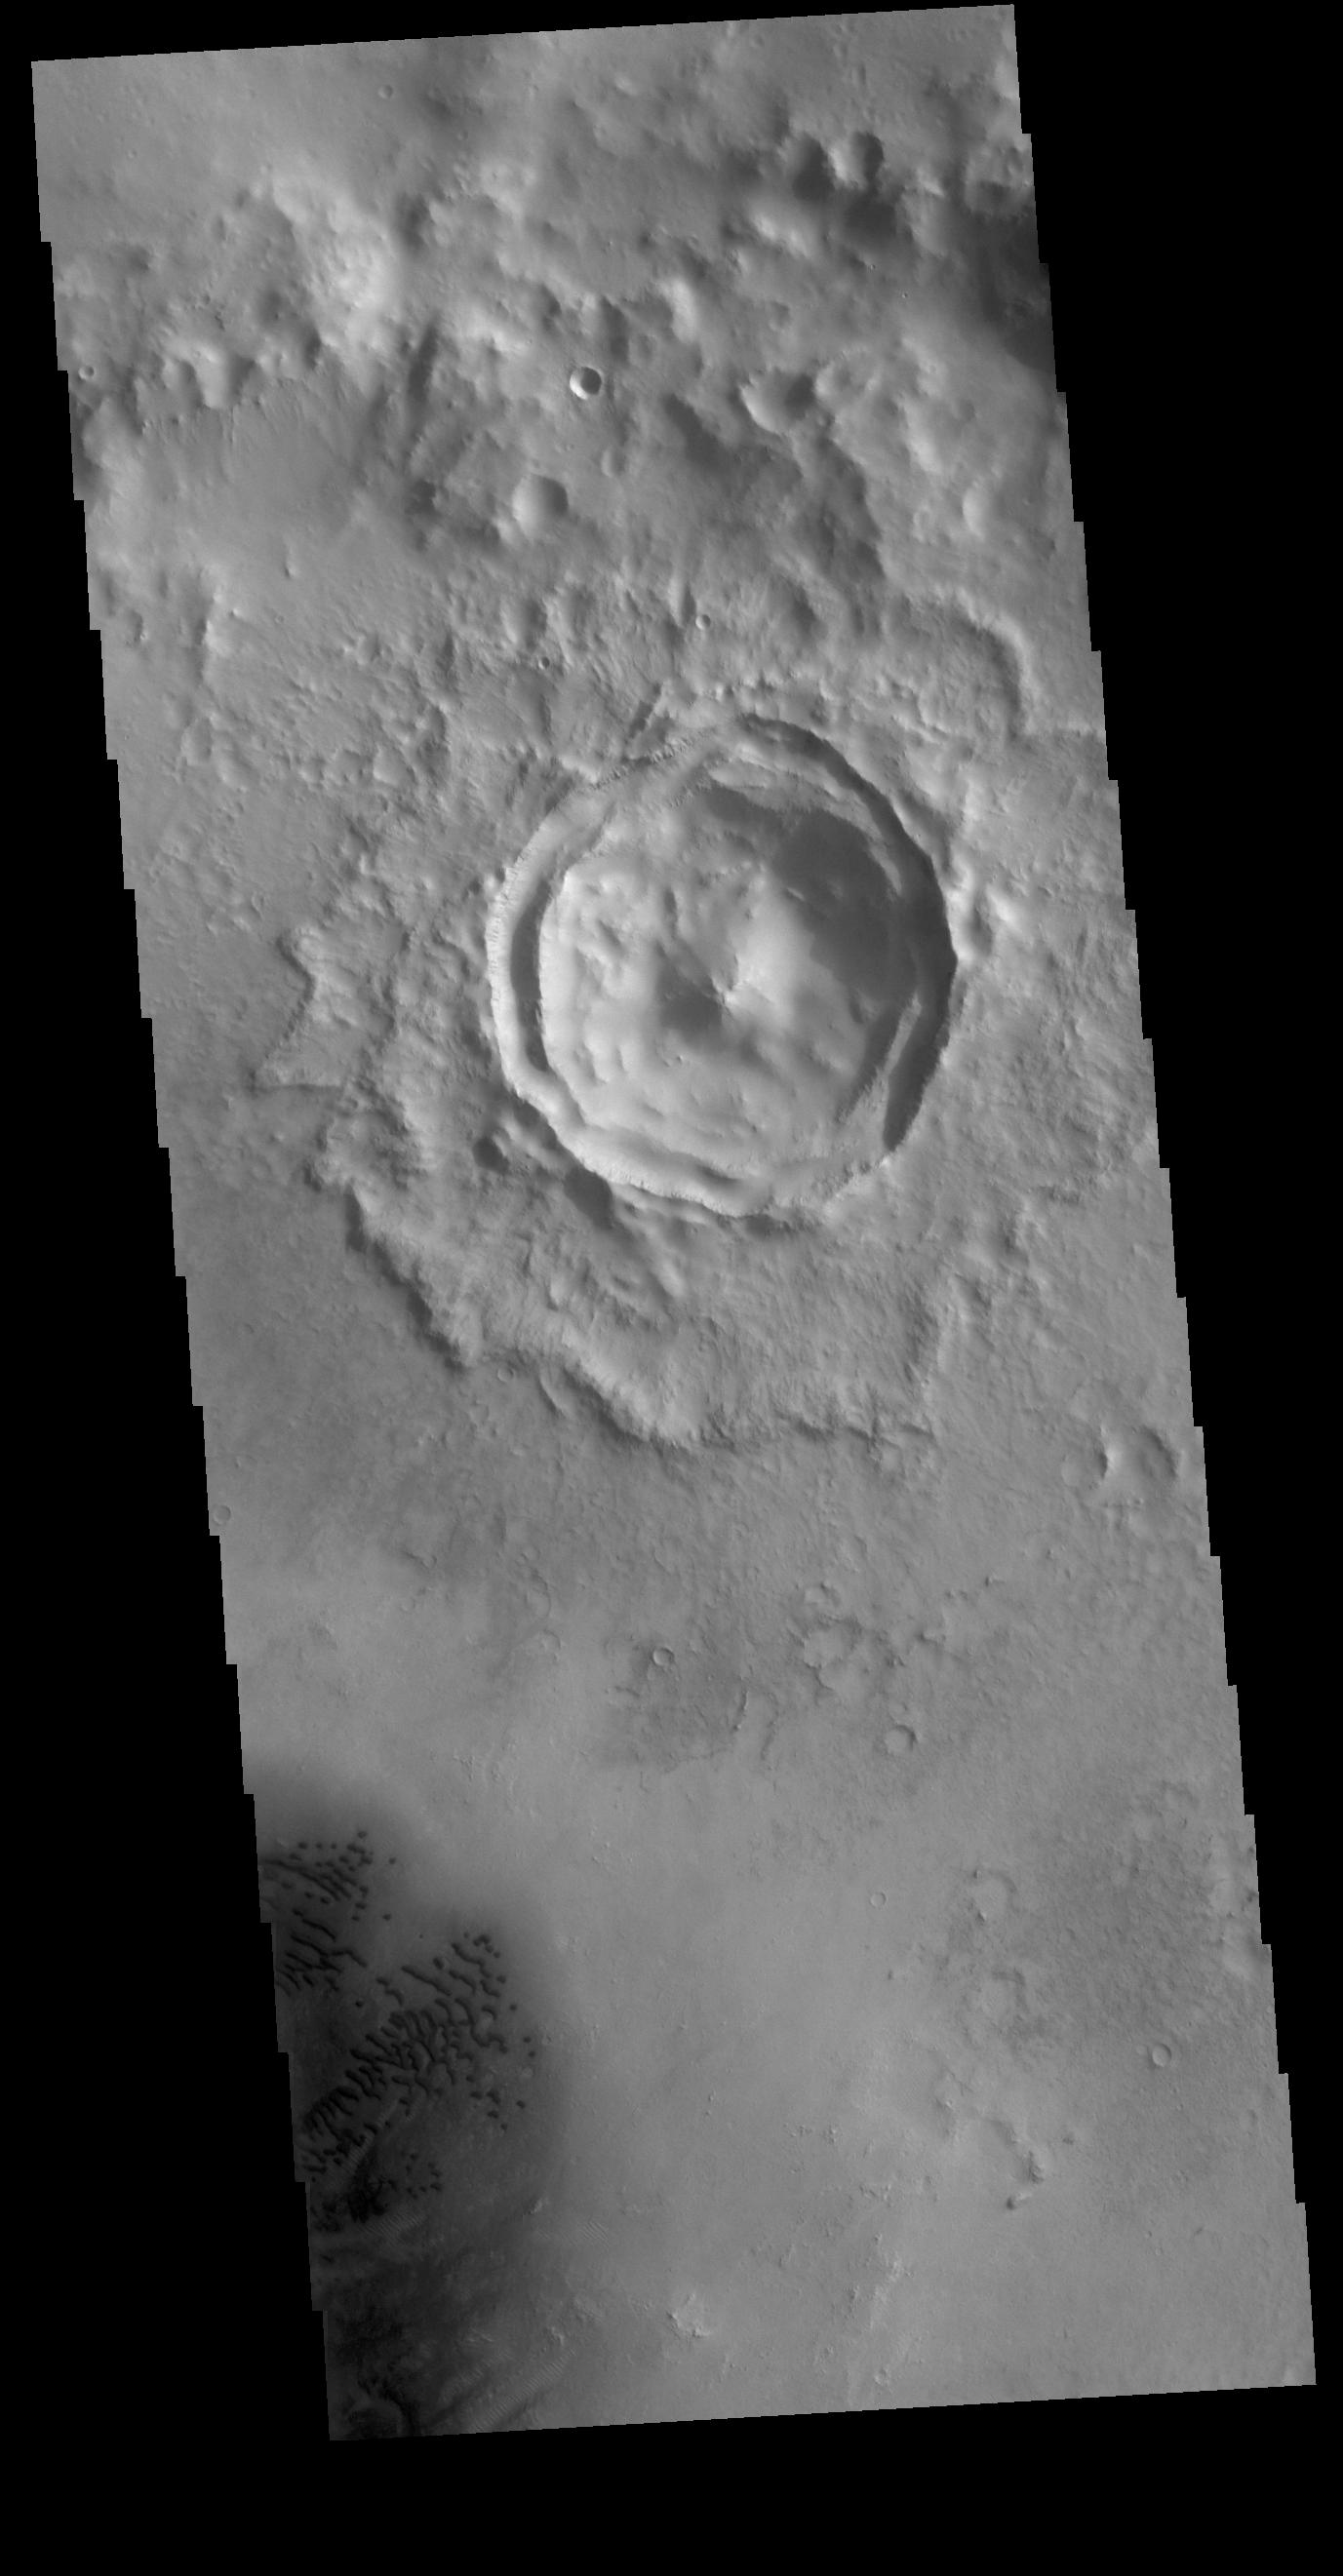 This image from NASAs Mars Odyssey shows an unnamed crater located in Arabia Terra. The small crater seen in the image is located on the floor of a much larger crater.